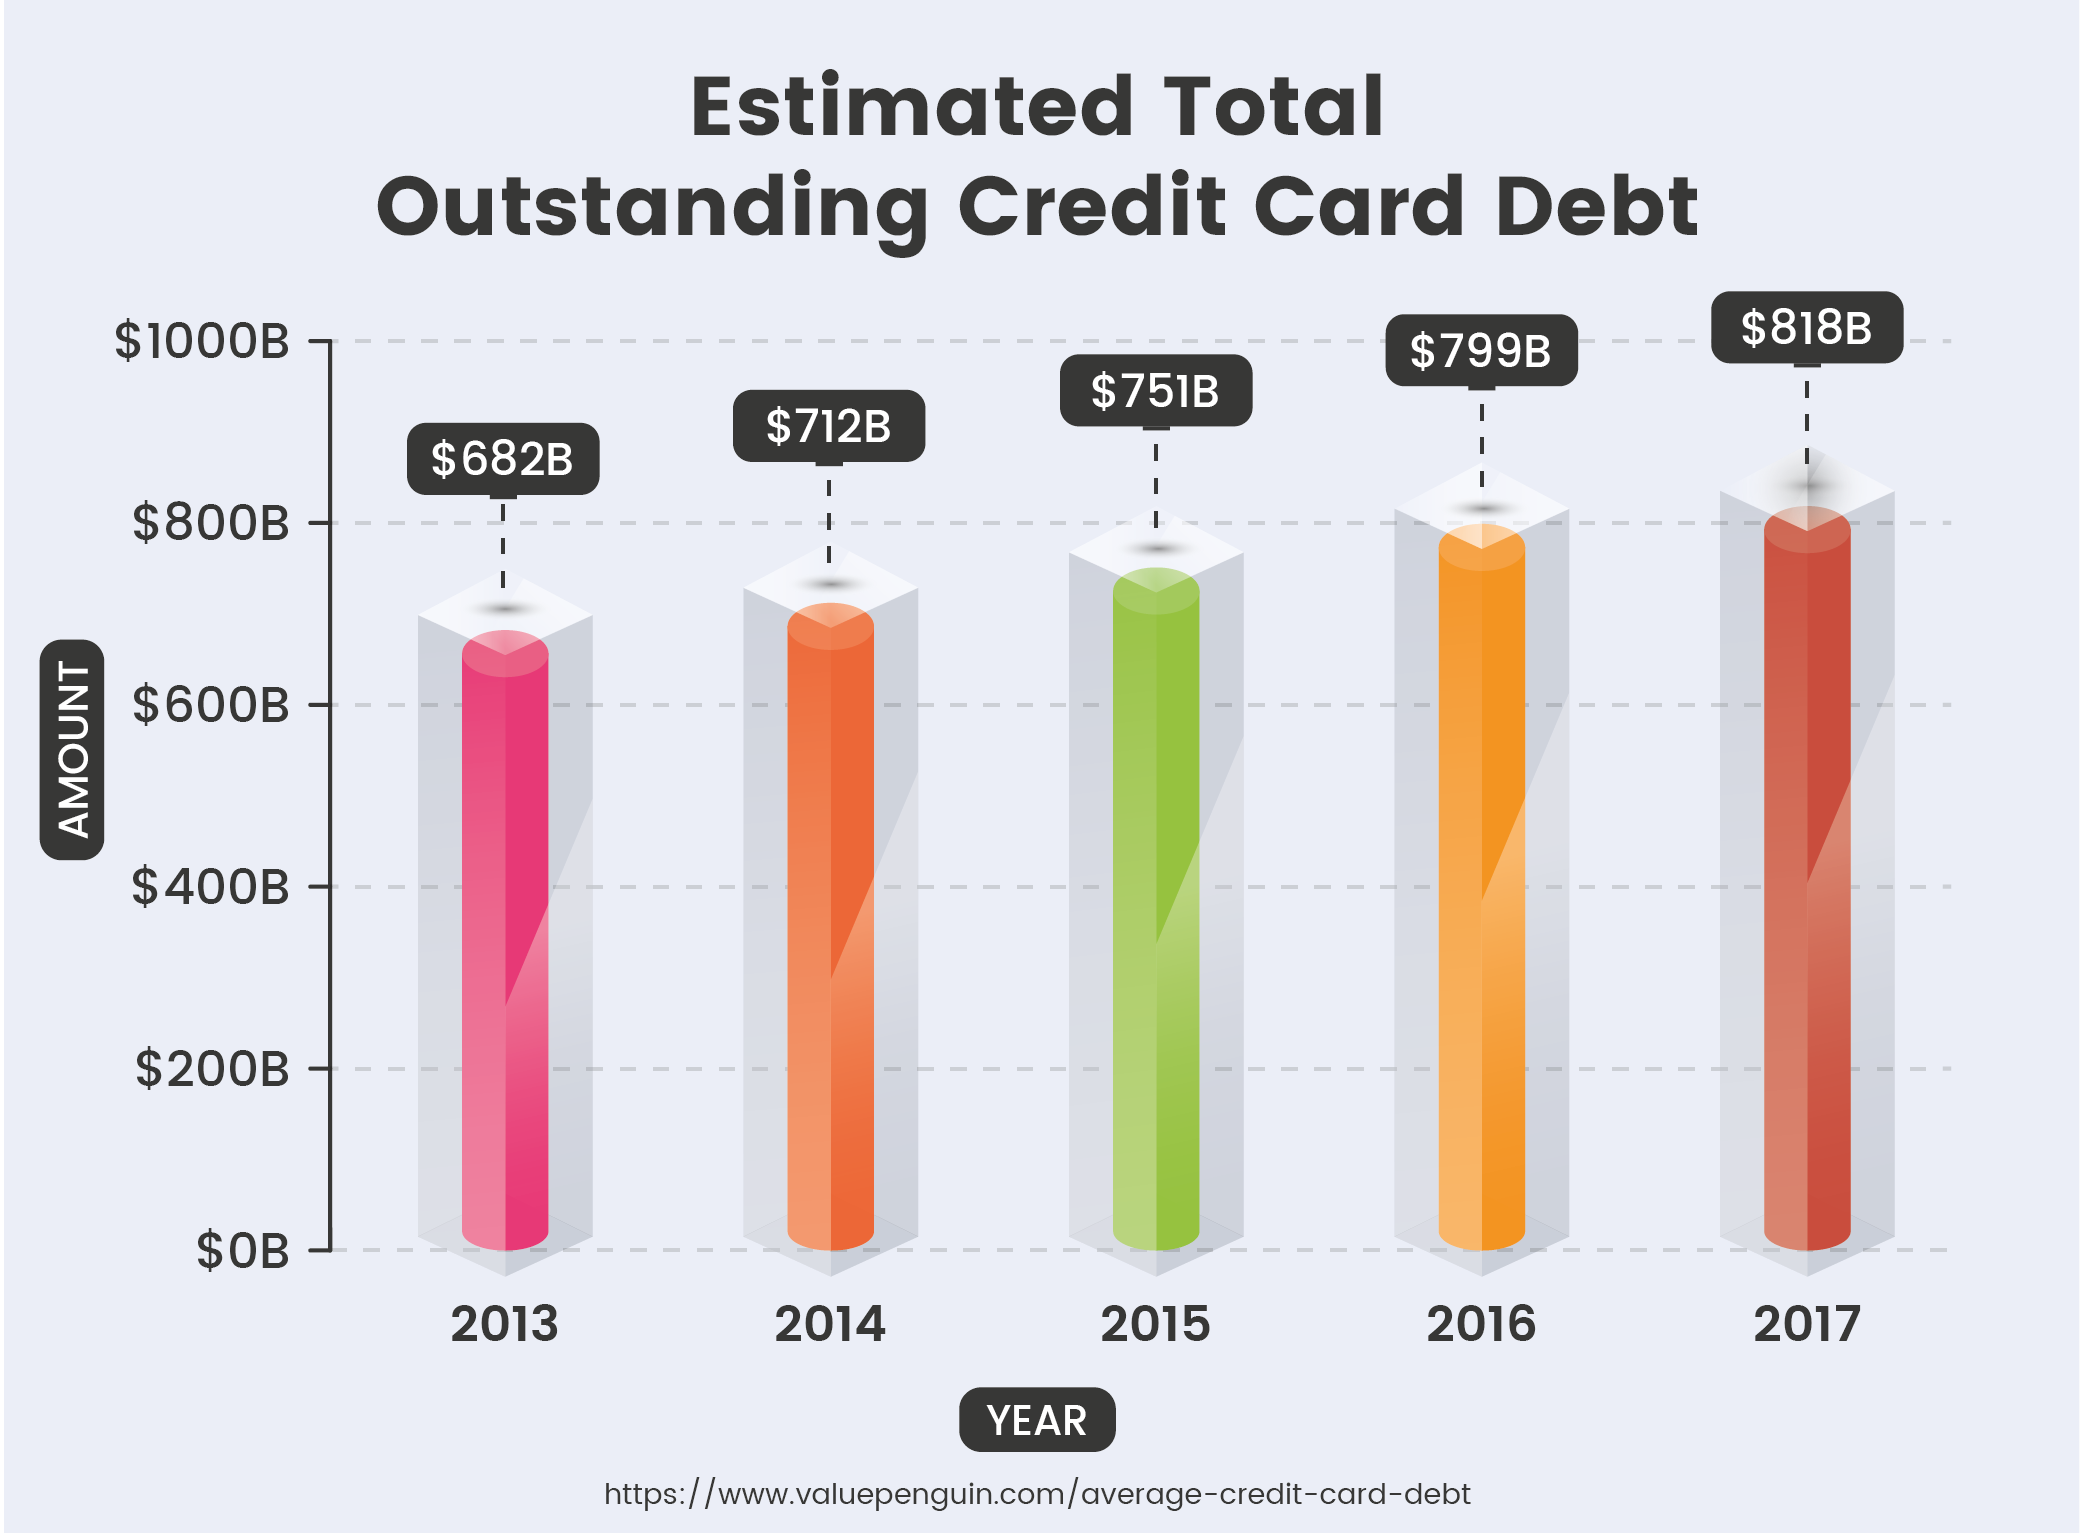 Estimated Total Outstanding Credit Card Debt